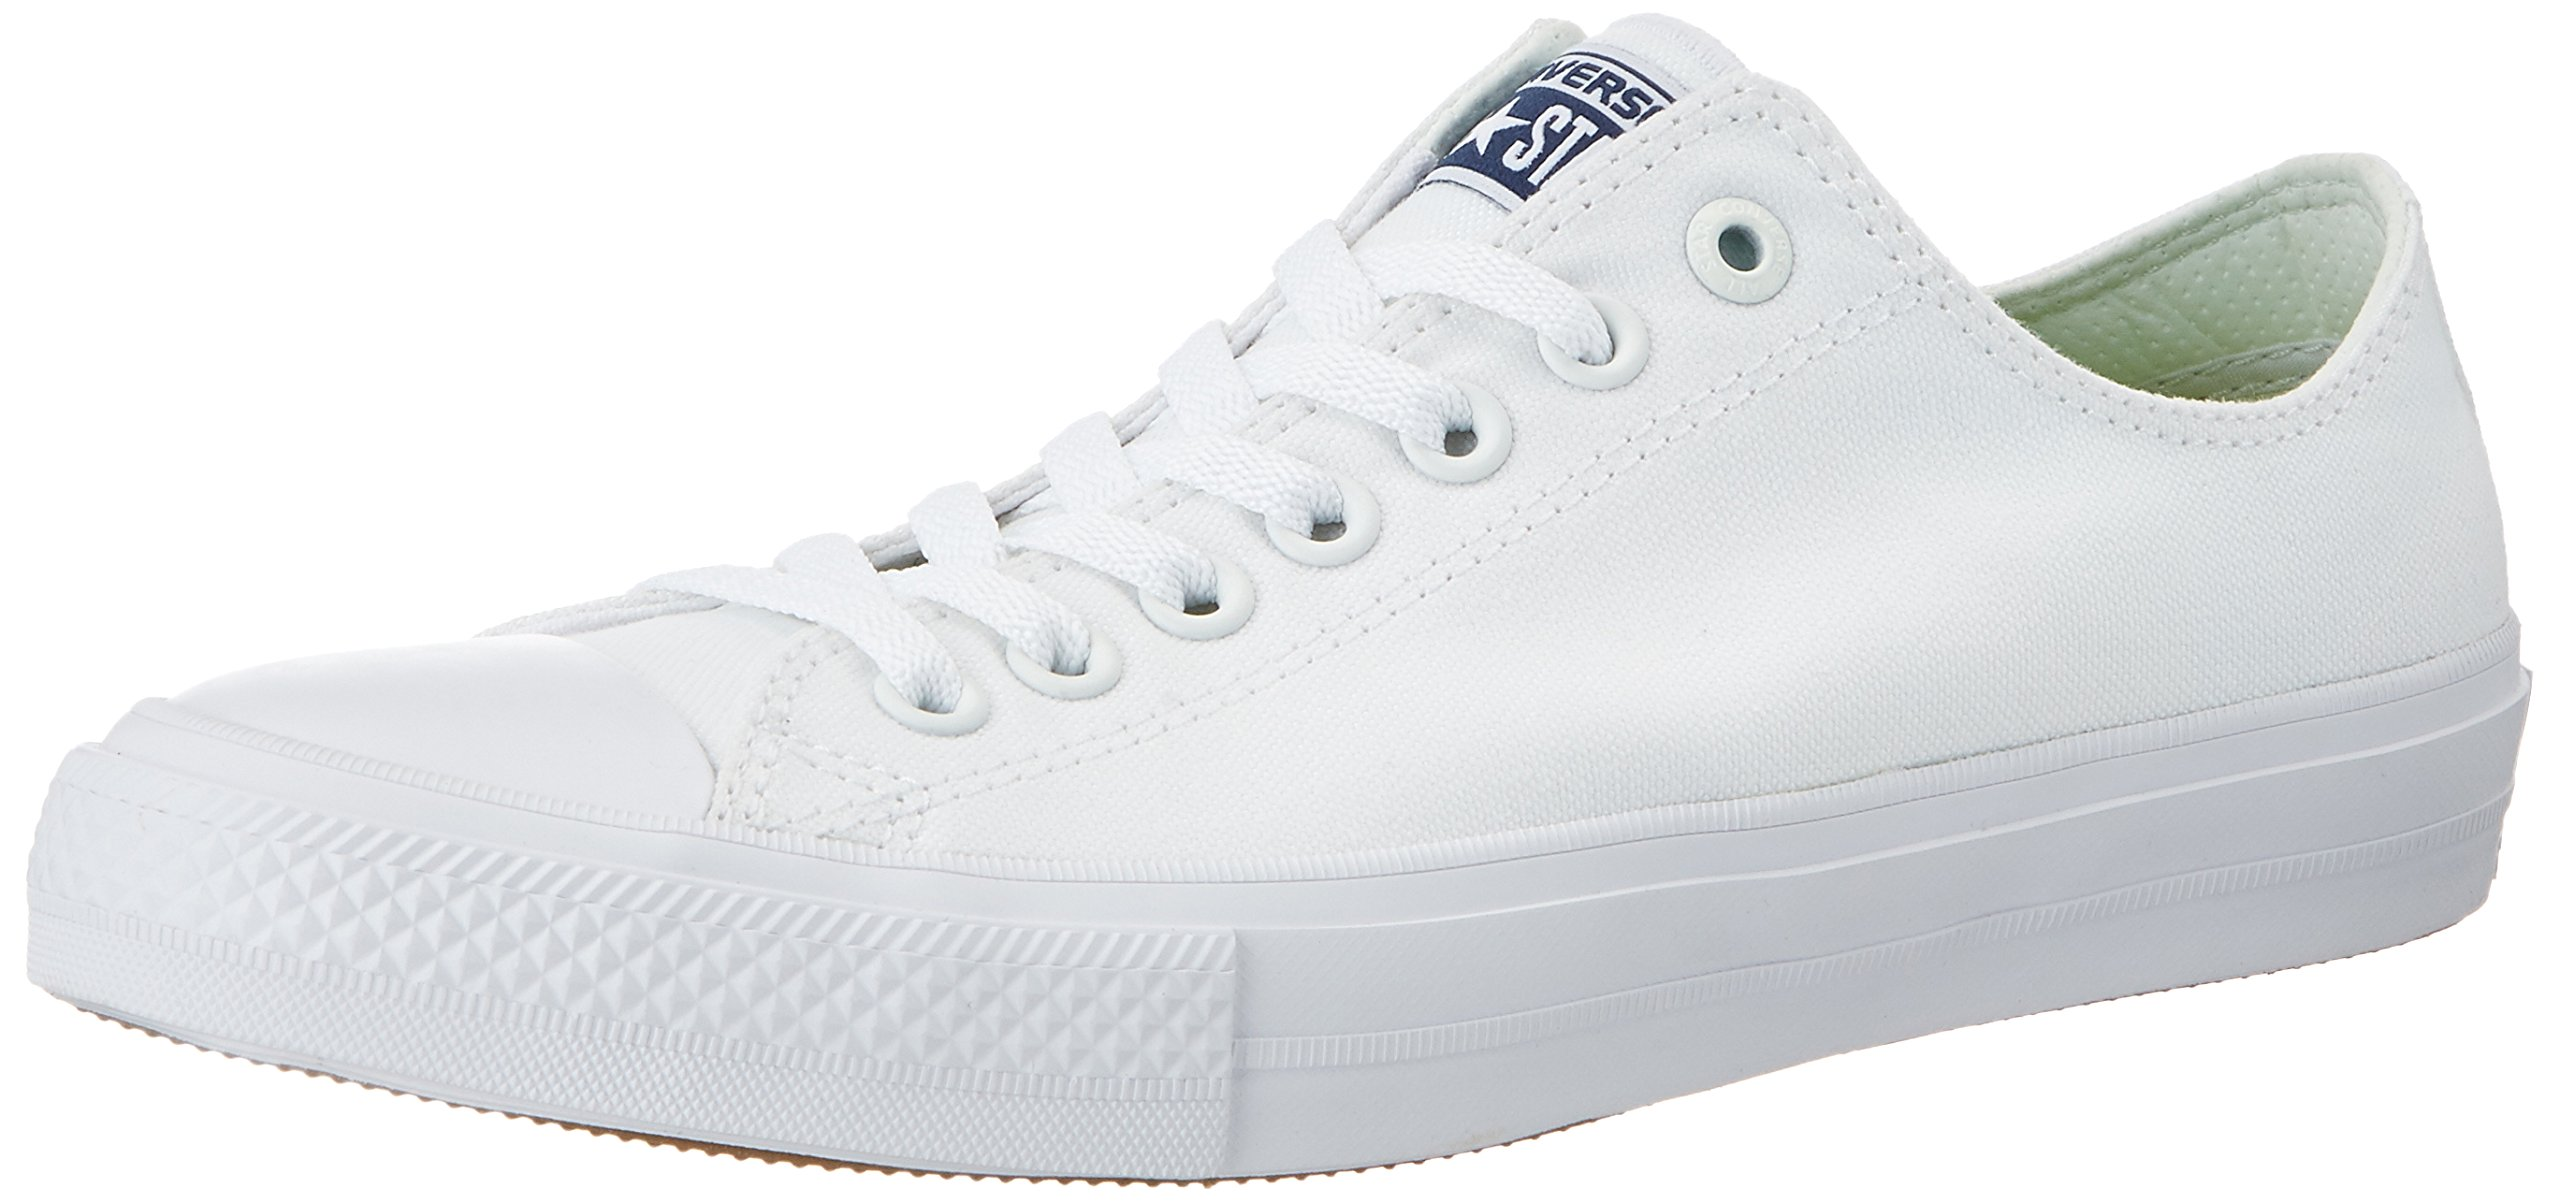 Galleon - Converse Mens Chuck Taylor All Star II White 150154C-100 (SIZE   11.5) c19afbb0c